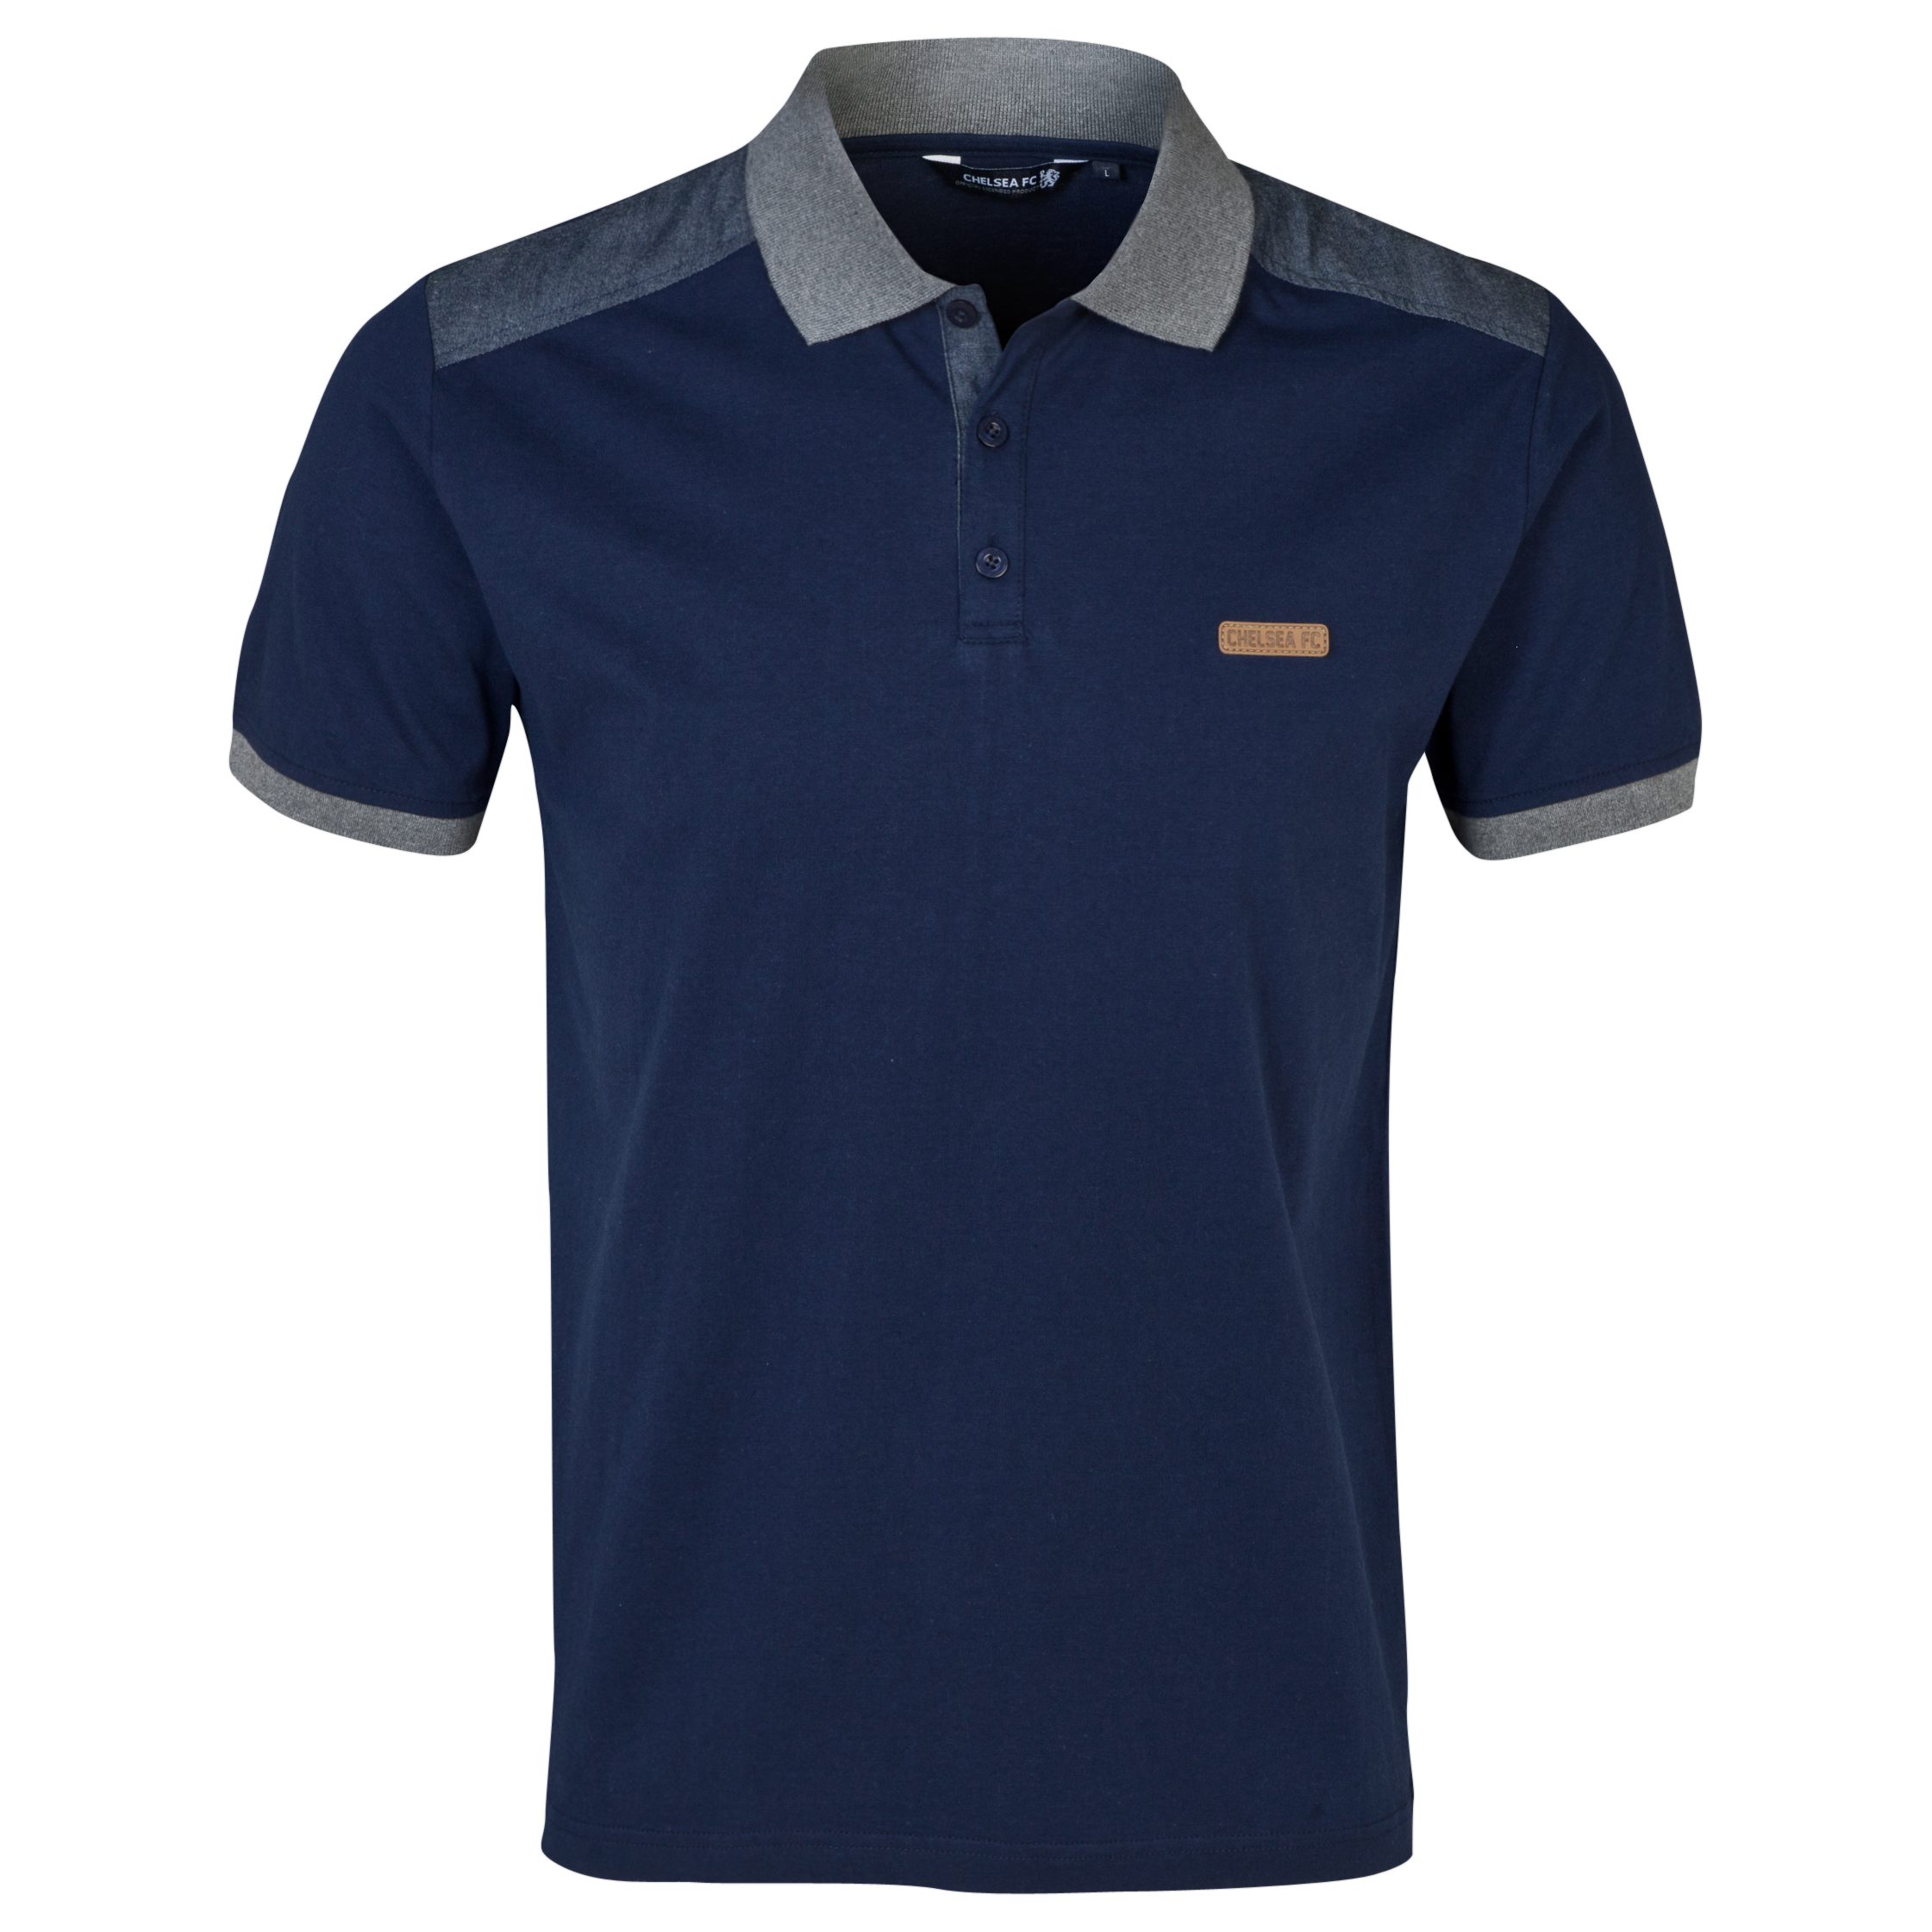 Chelsea Fashion Chambray Panelled Polo Shirt - Mens Blue